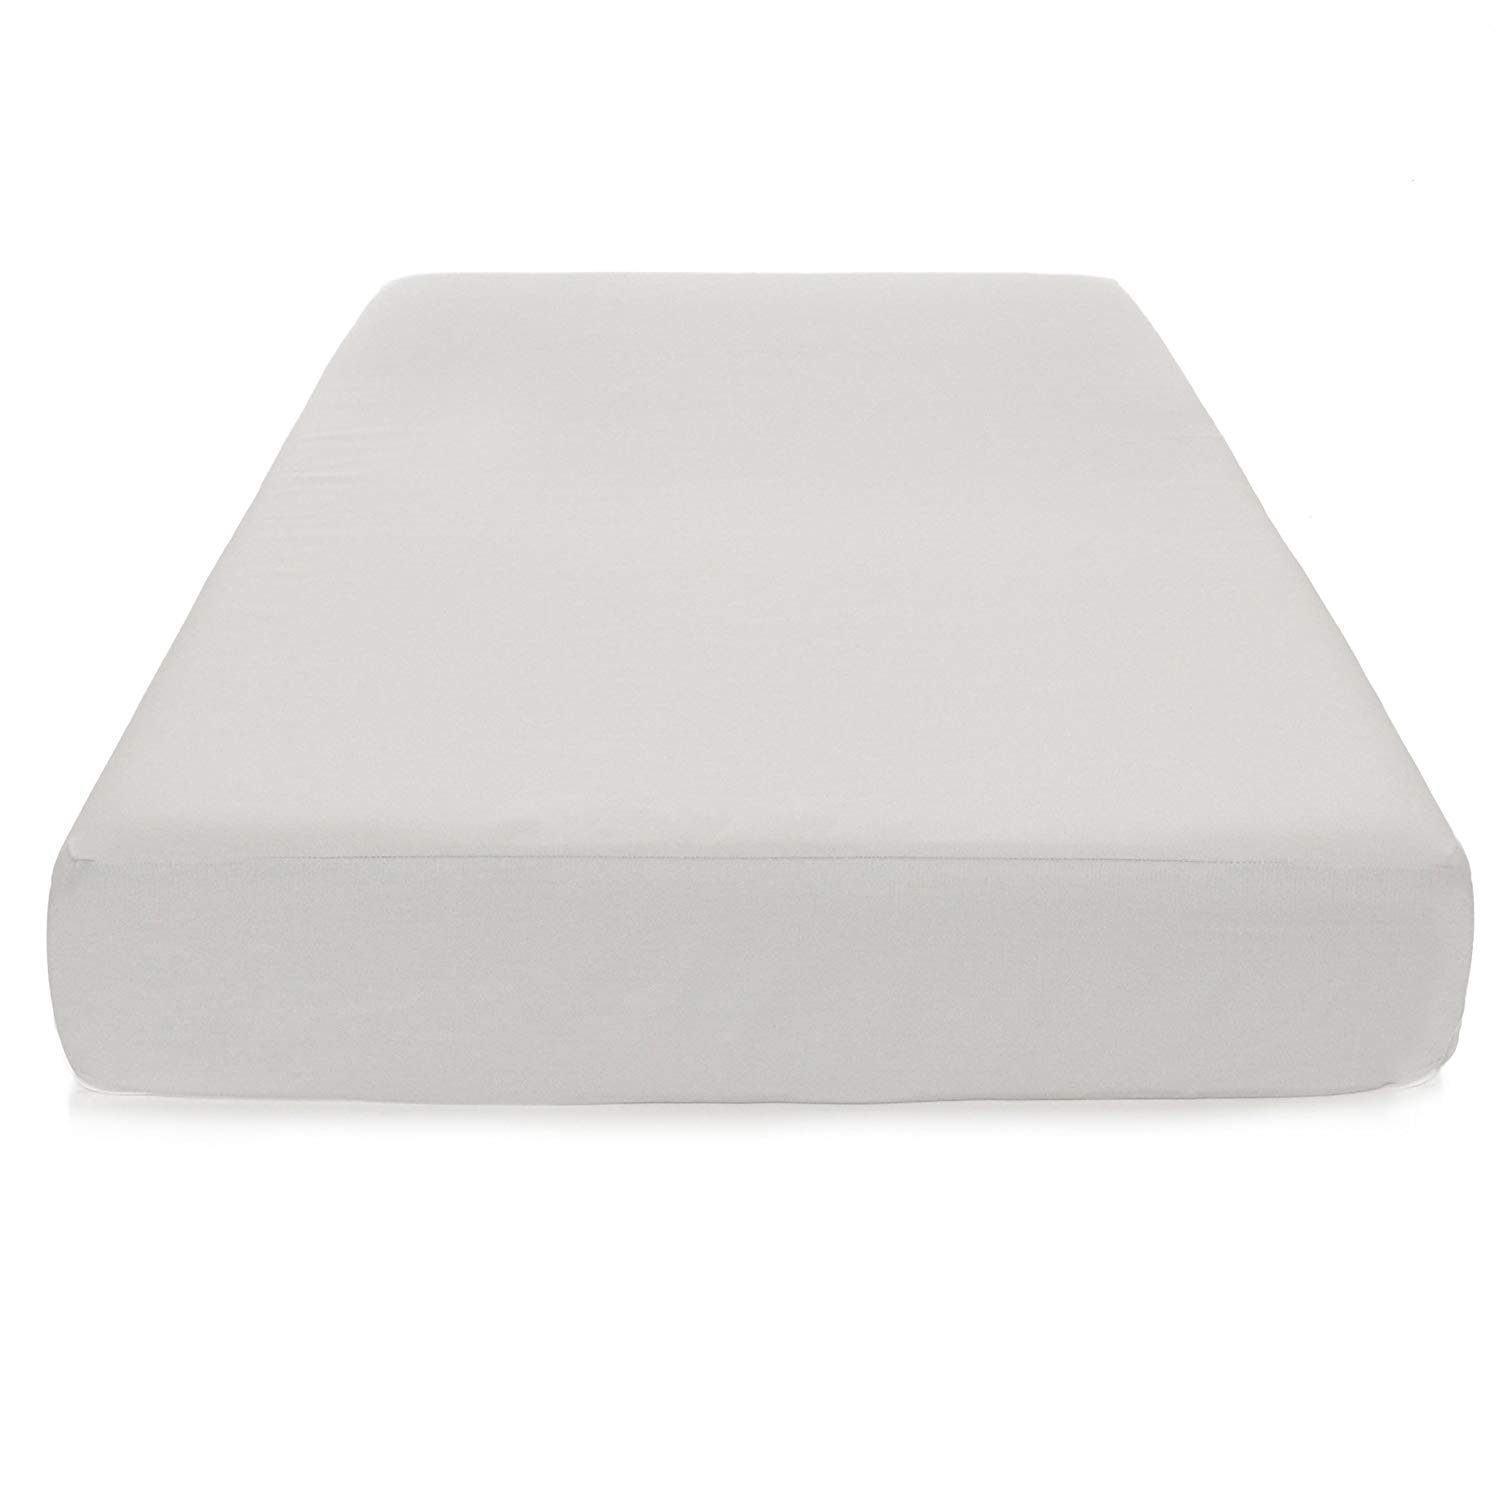 Baby Cot Mattress Waterproof Anti-Allergenic and miteproof Breathable Very Comfortable with Free Zip Cove and Fitted Sheet 95X65-7.5, White